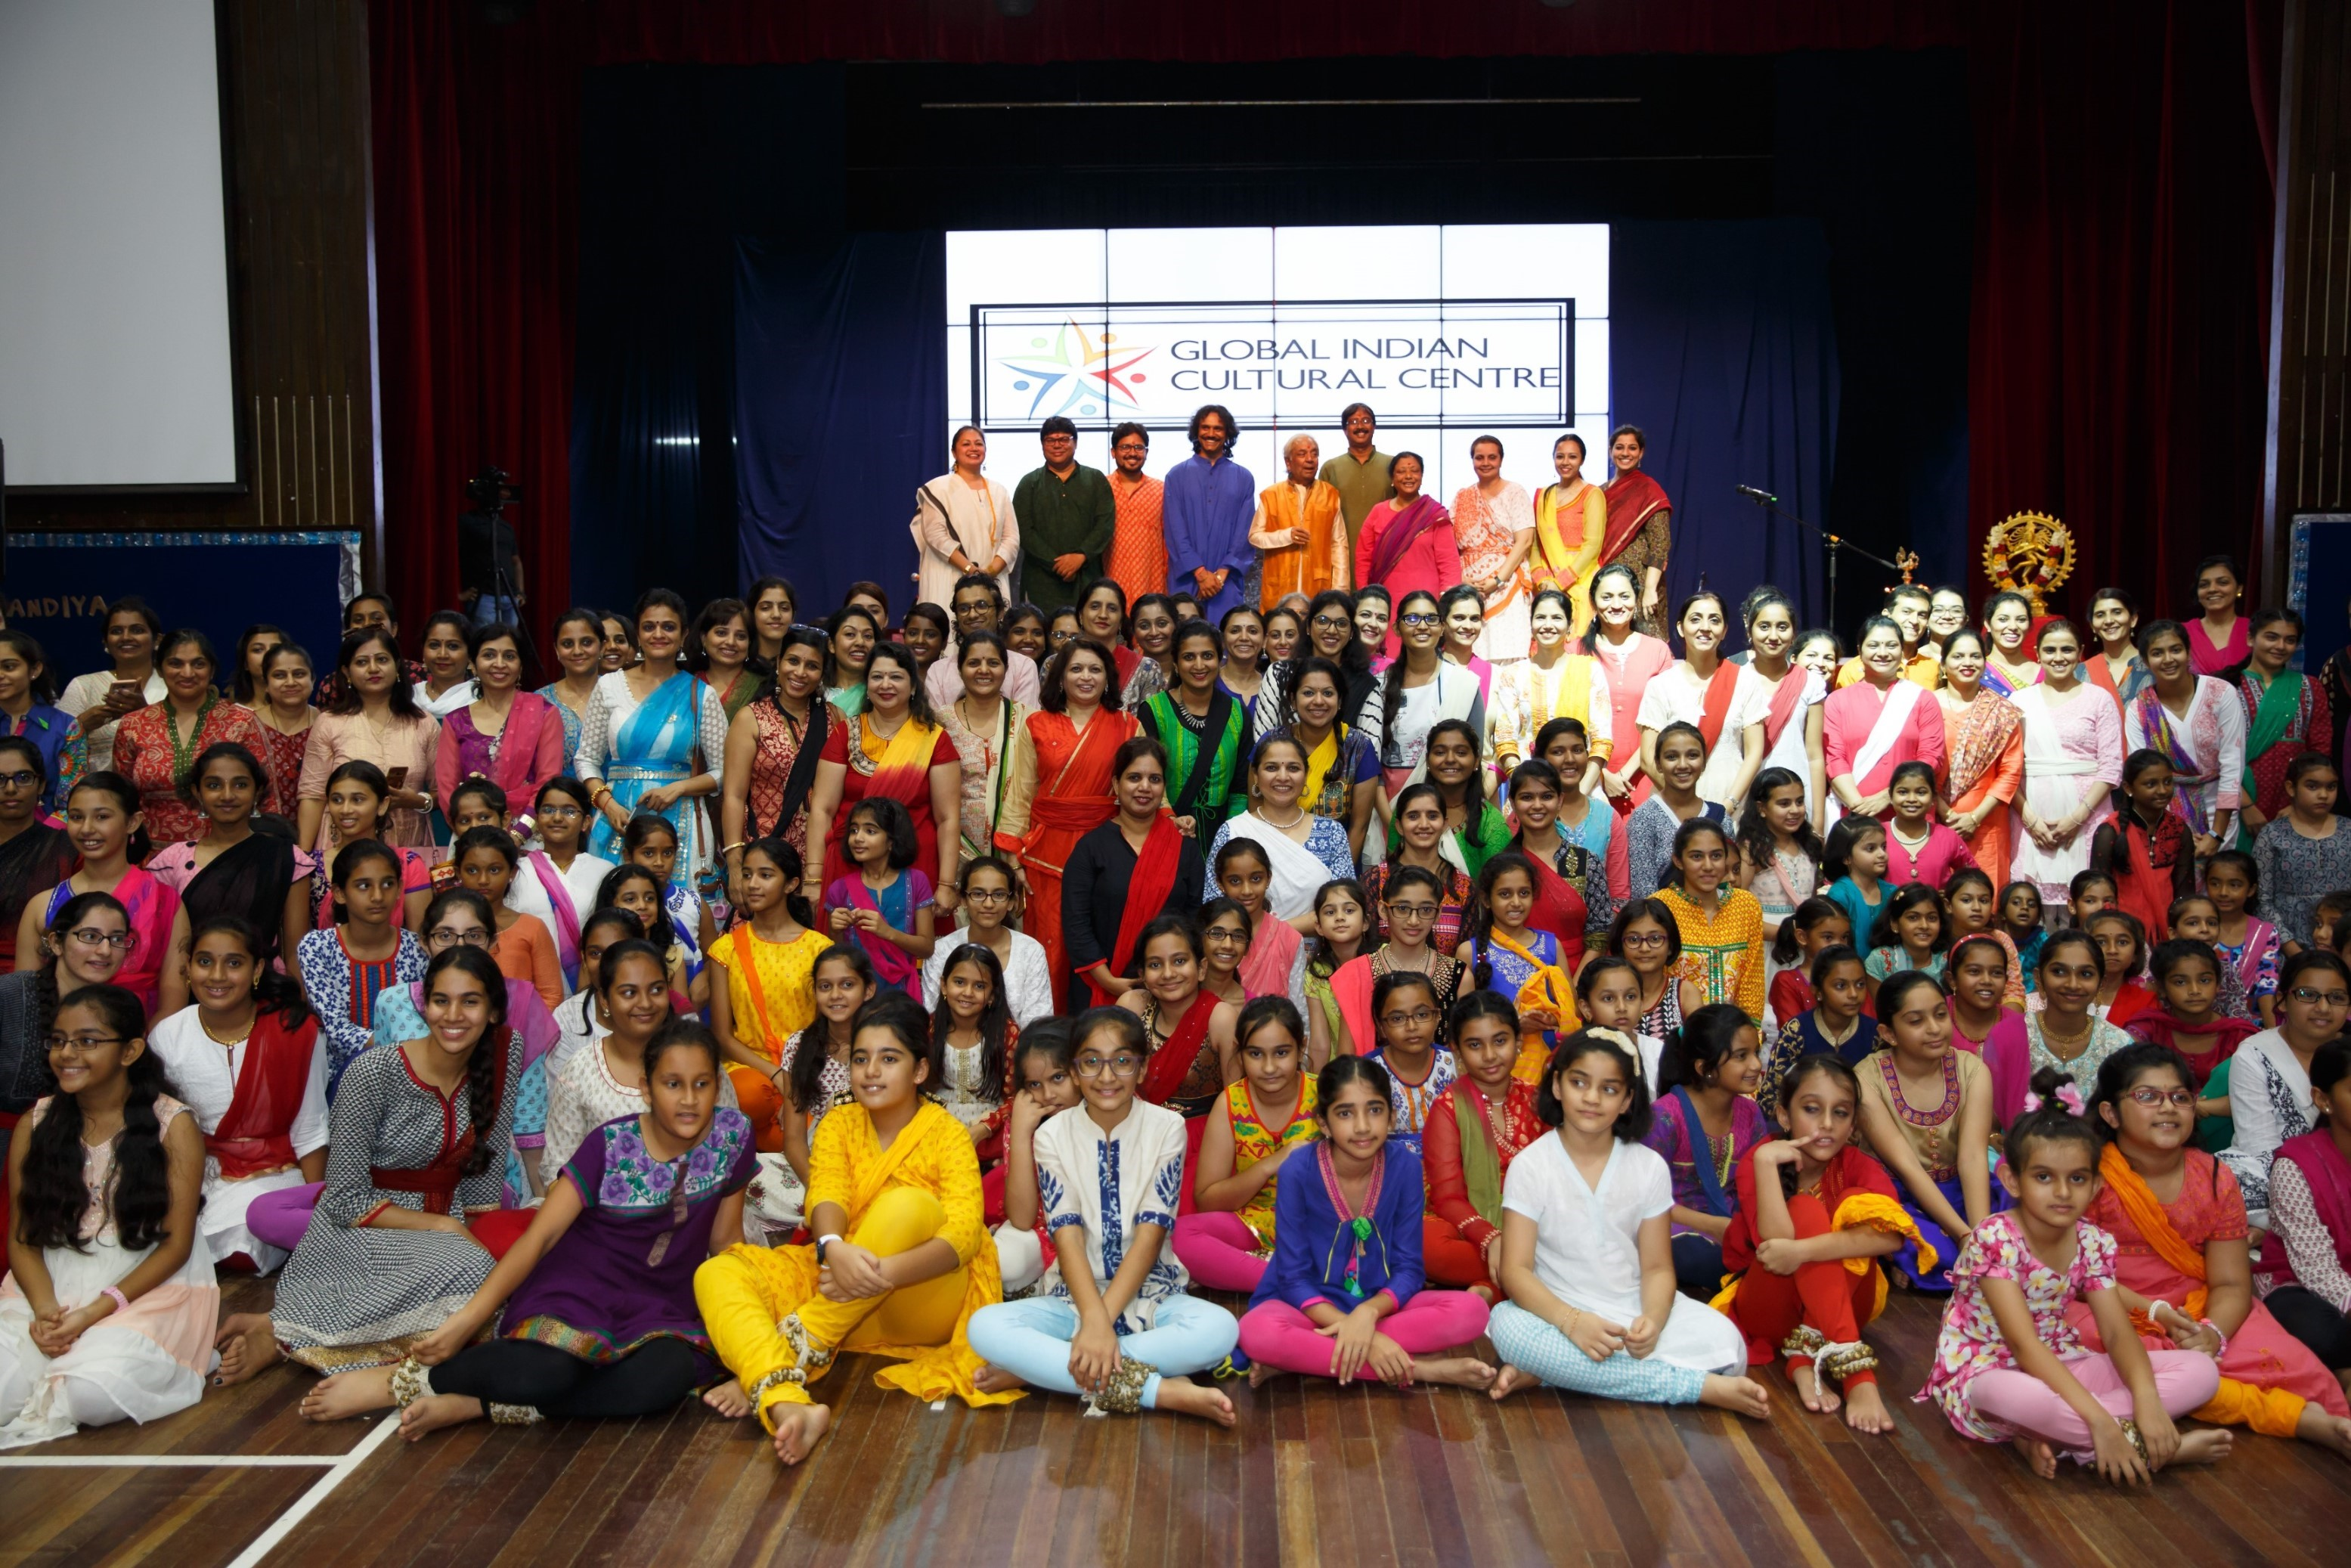 Pandit Birju Maharaj and his workshop participants in Singapore.